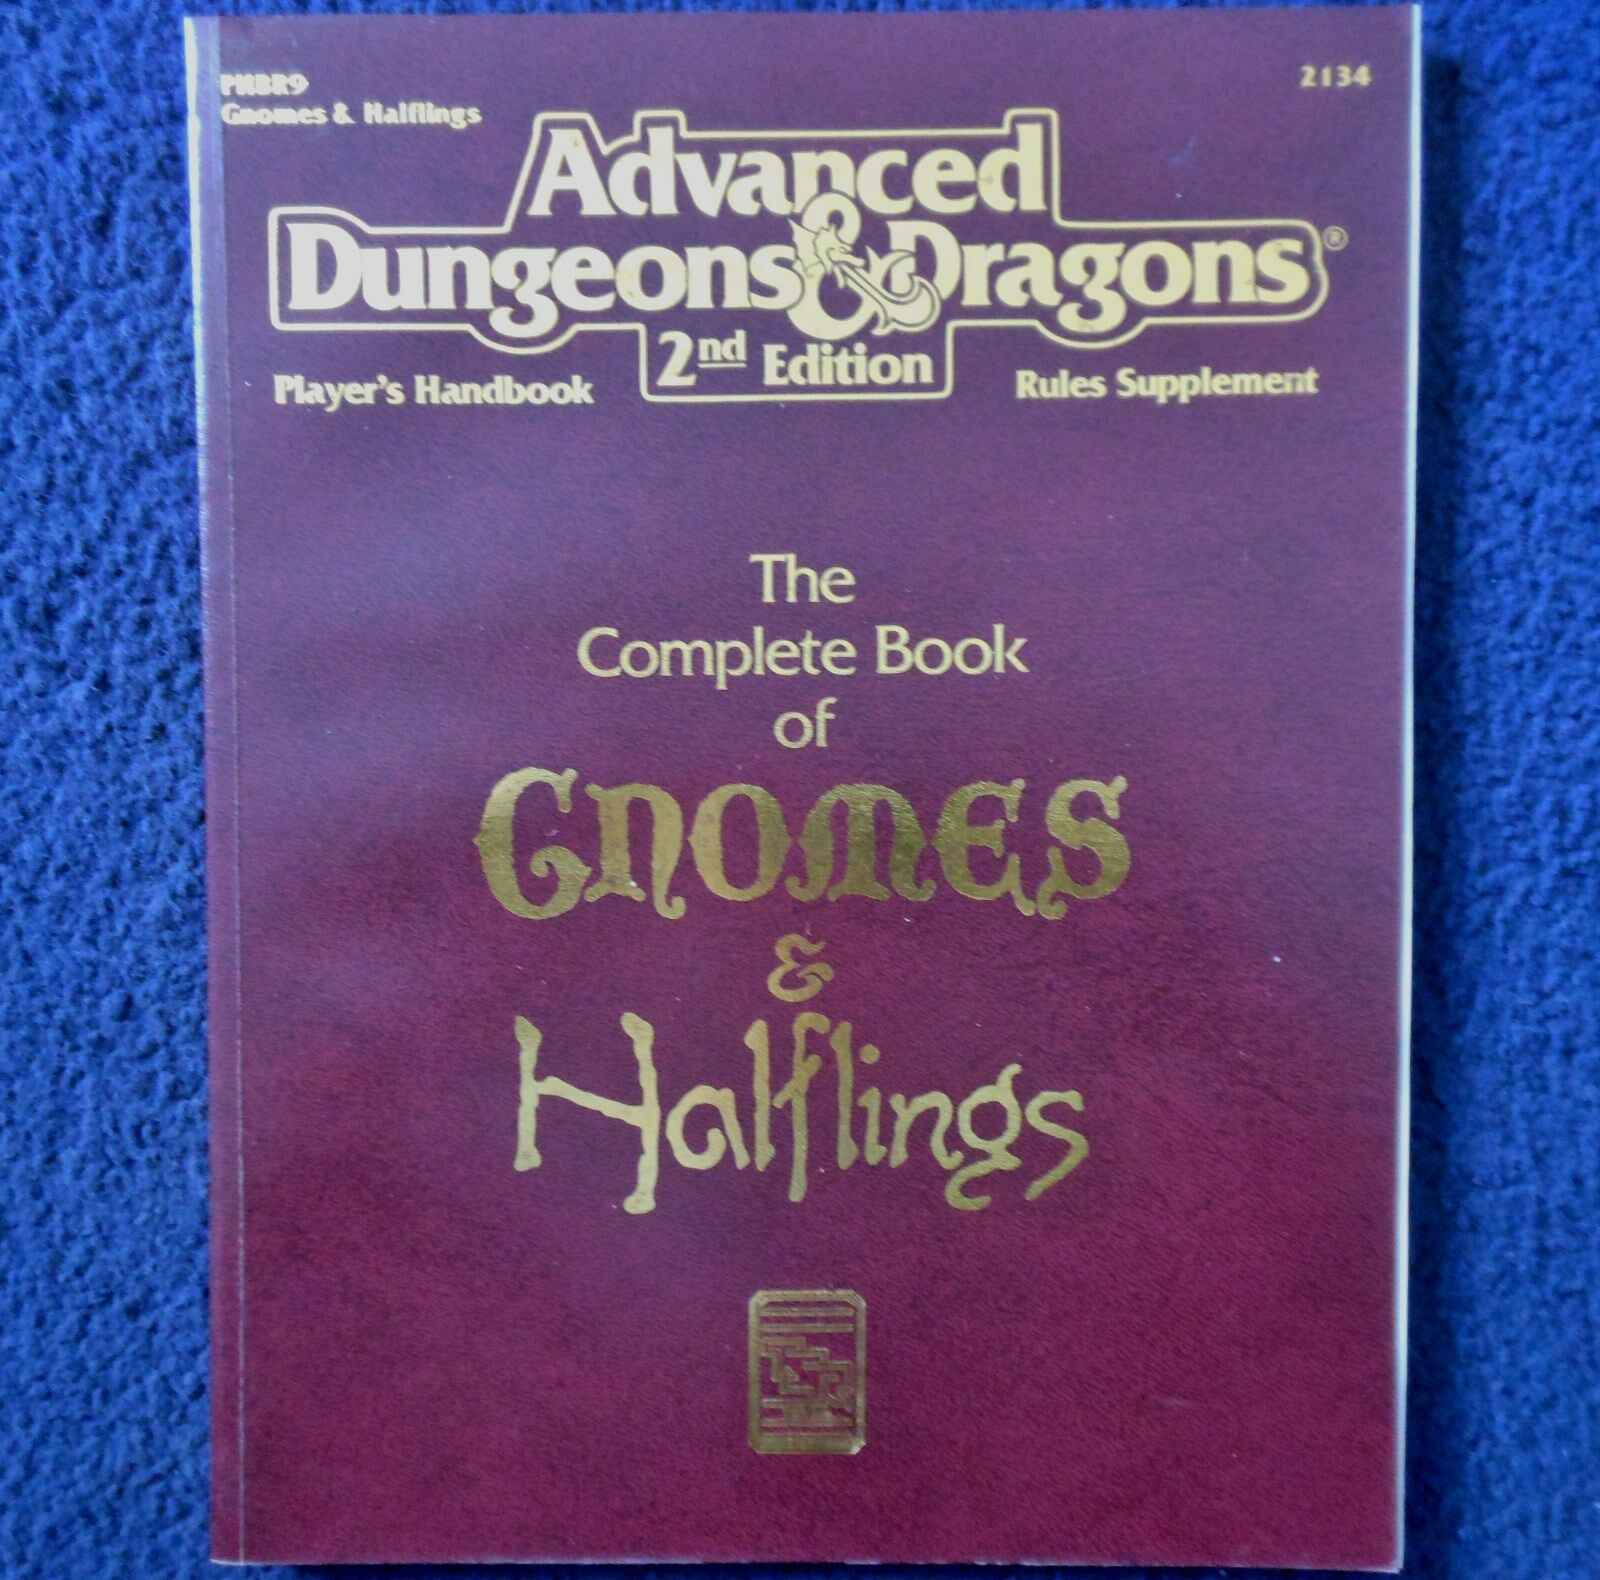 2134 The Complete Book of Gnomes & Halflings Advanced Dungeons & Dragons D&D RPG